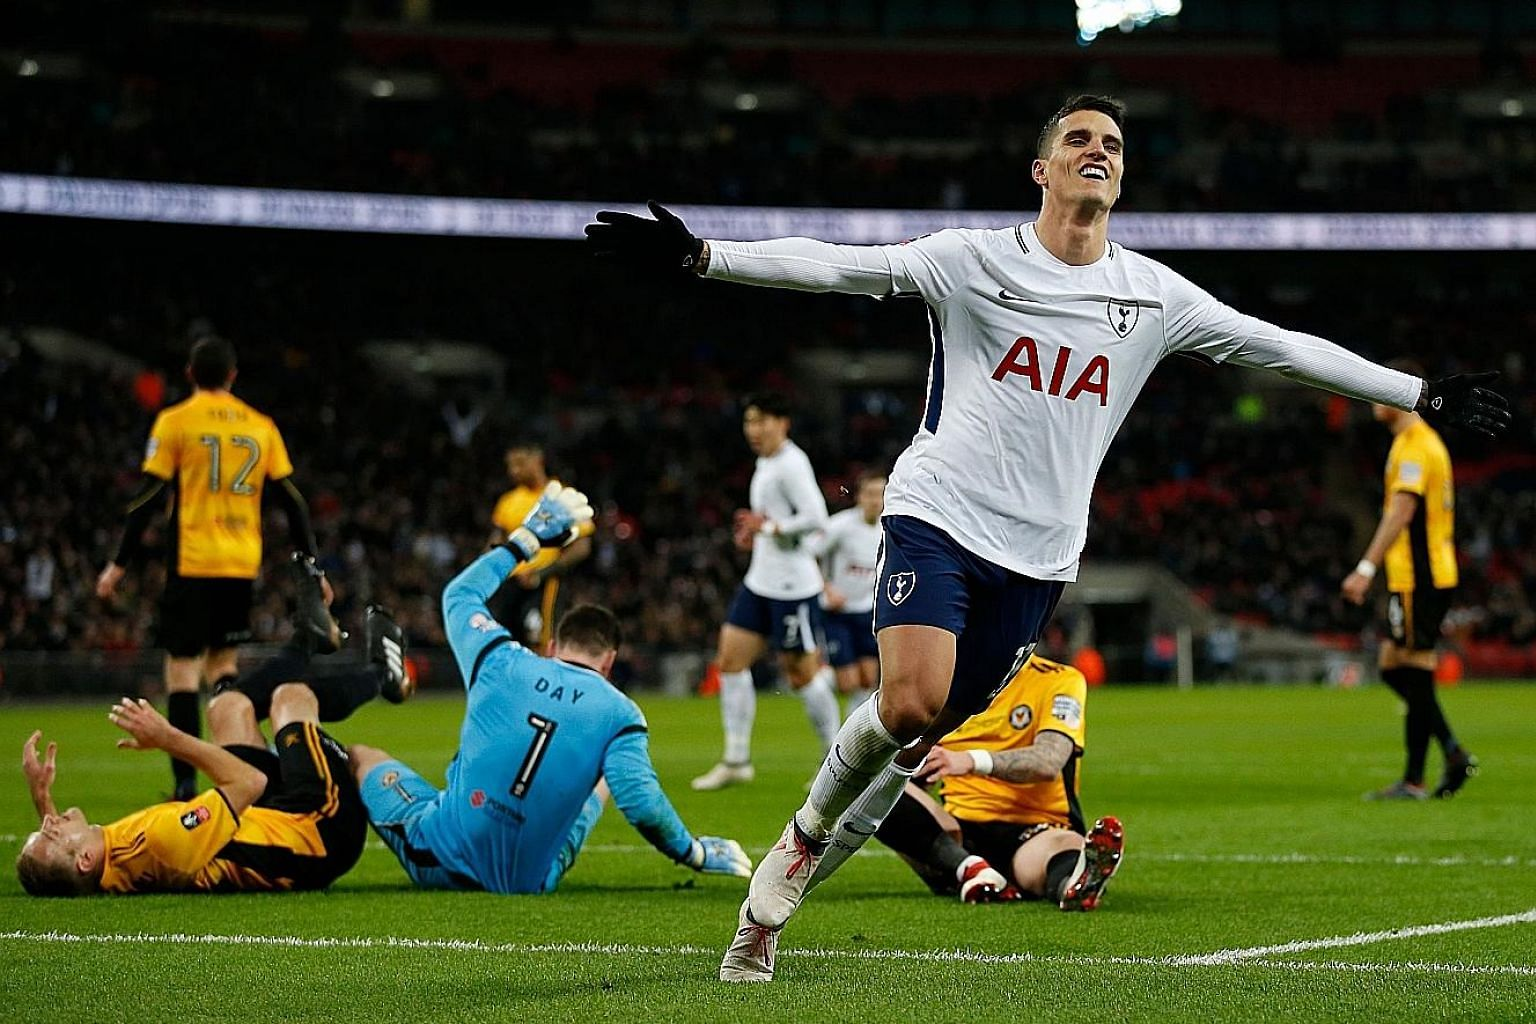 Midfielder Erik Lamela, whose hip injury kept him out for over a year, wheeling away after scoring Spurs' second goal against Newport in the FA Cup replay on Wednesday.